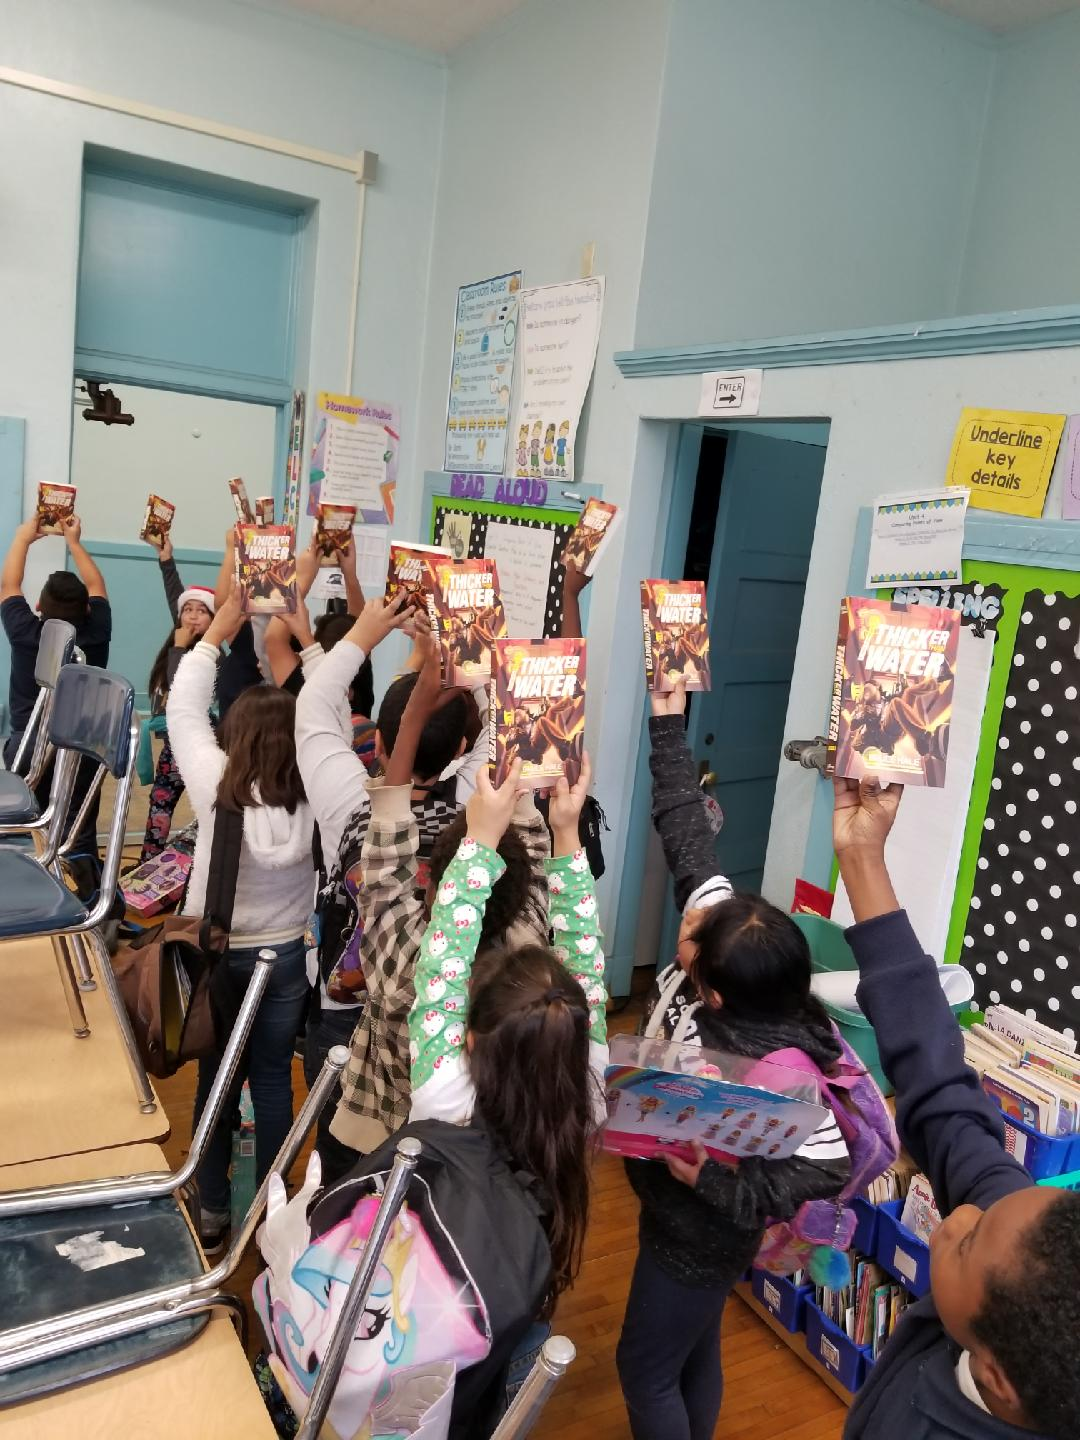 Kids with books in the air.